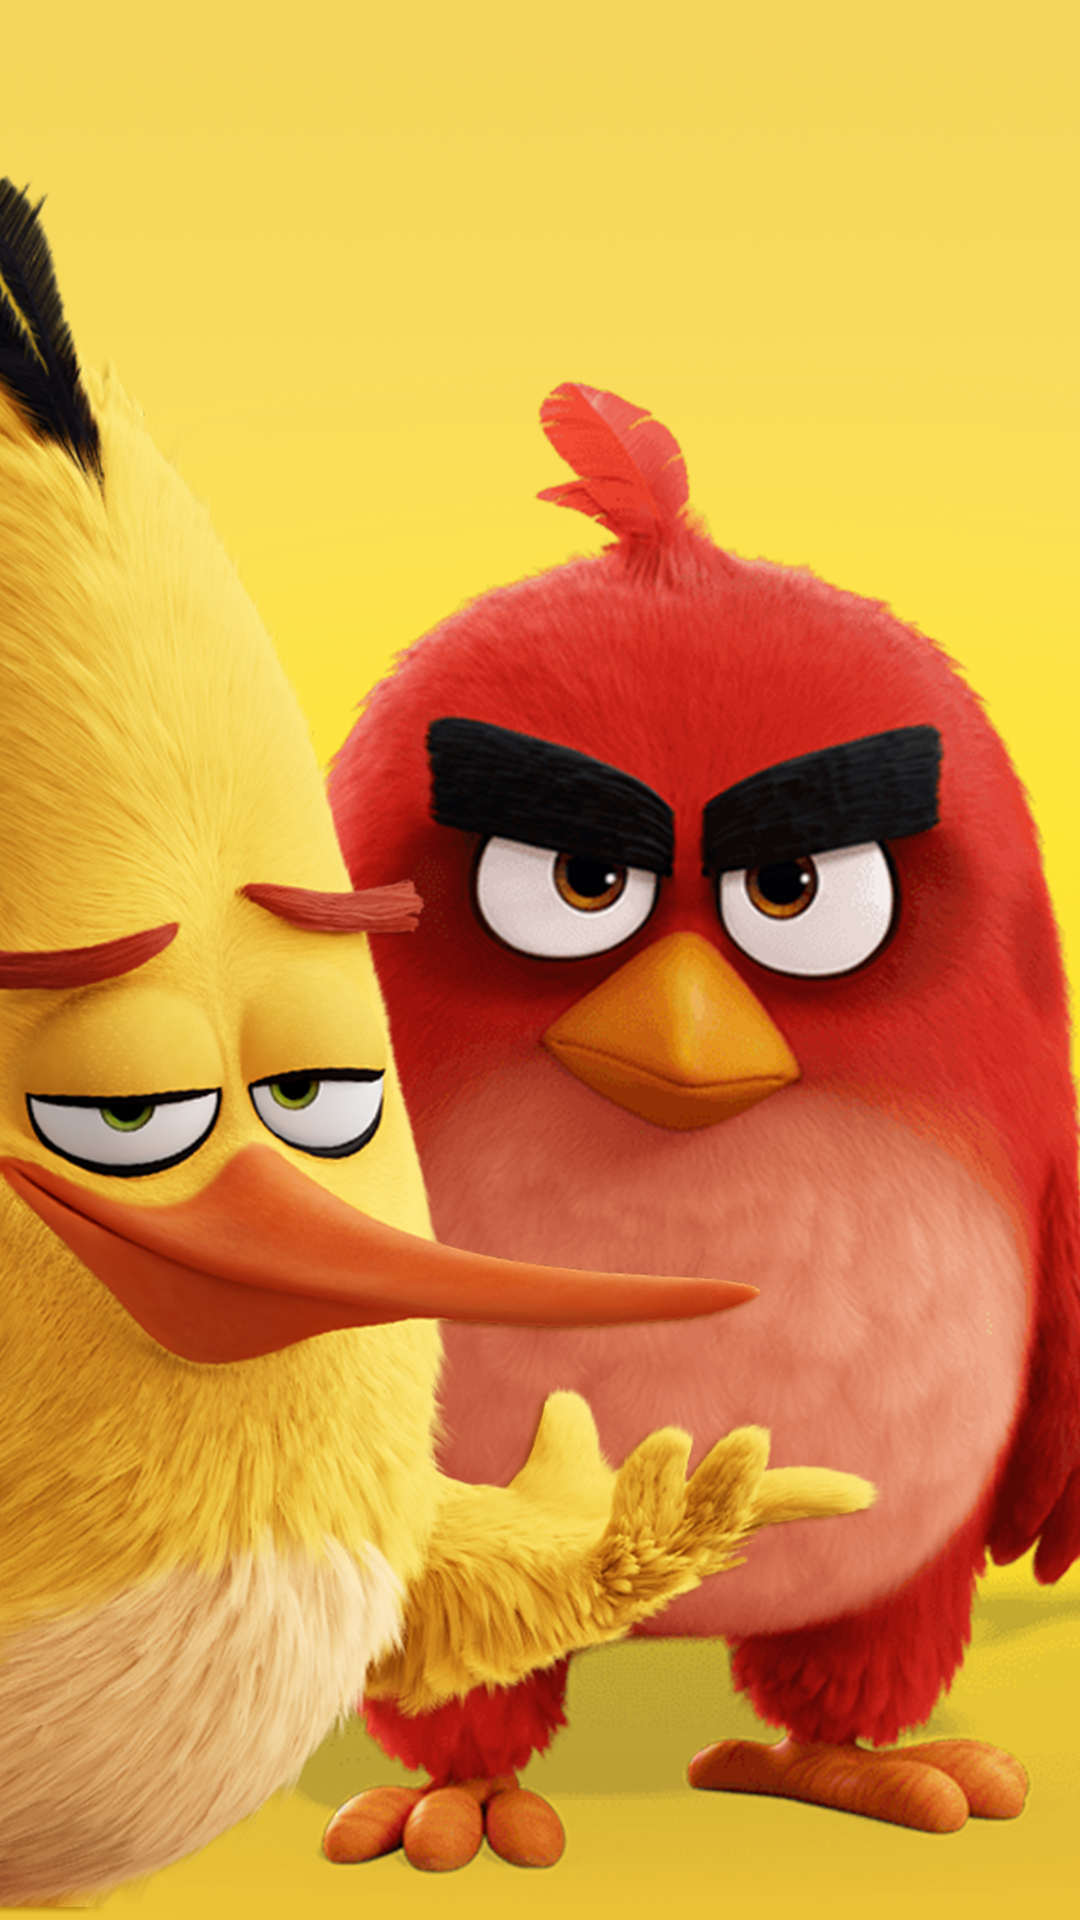 Angry Birds 1080 X 1920 FHD Wallpaper